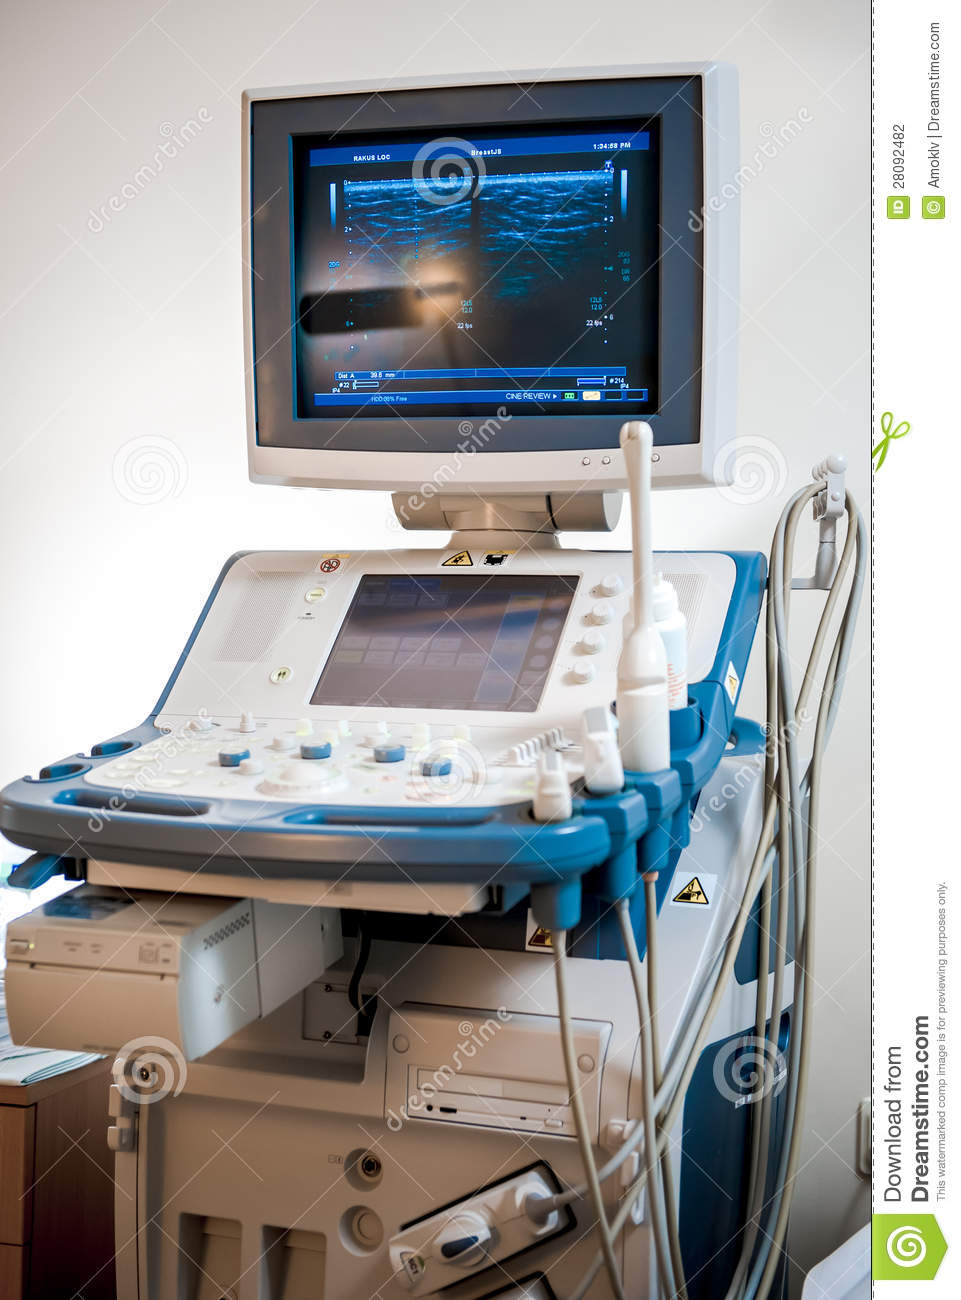 medical ultrasonography machine stock photography